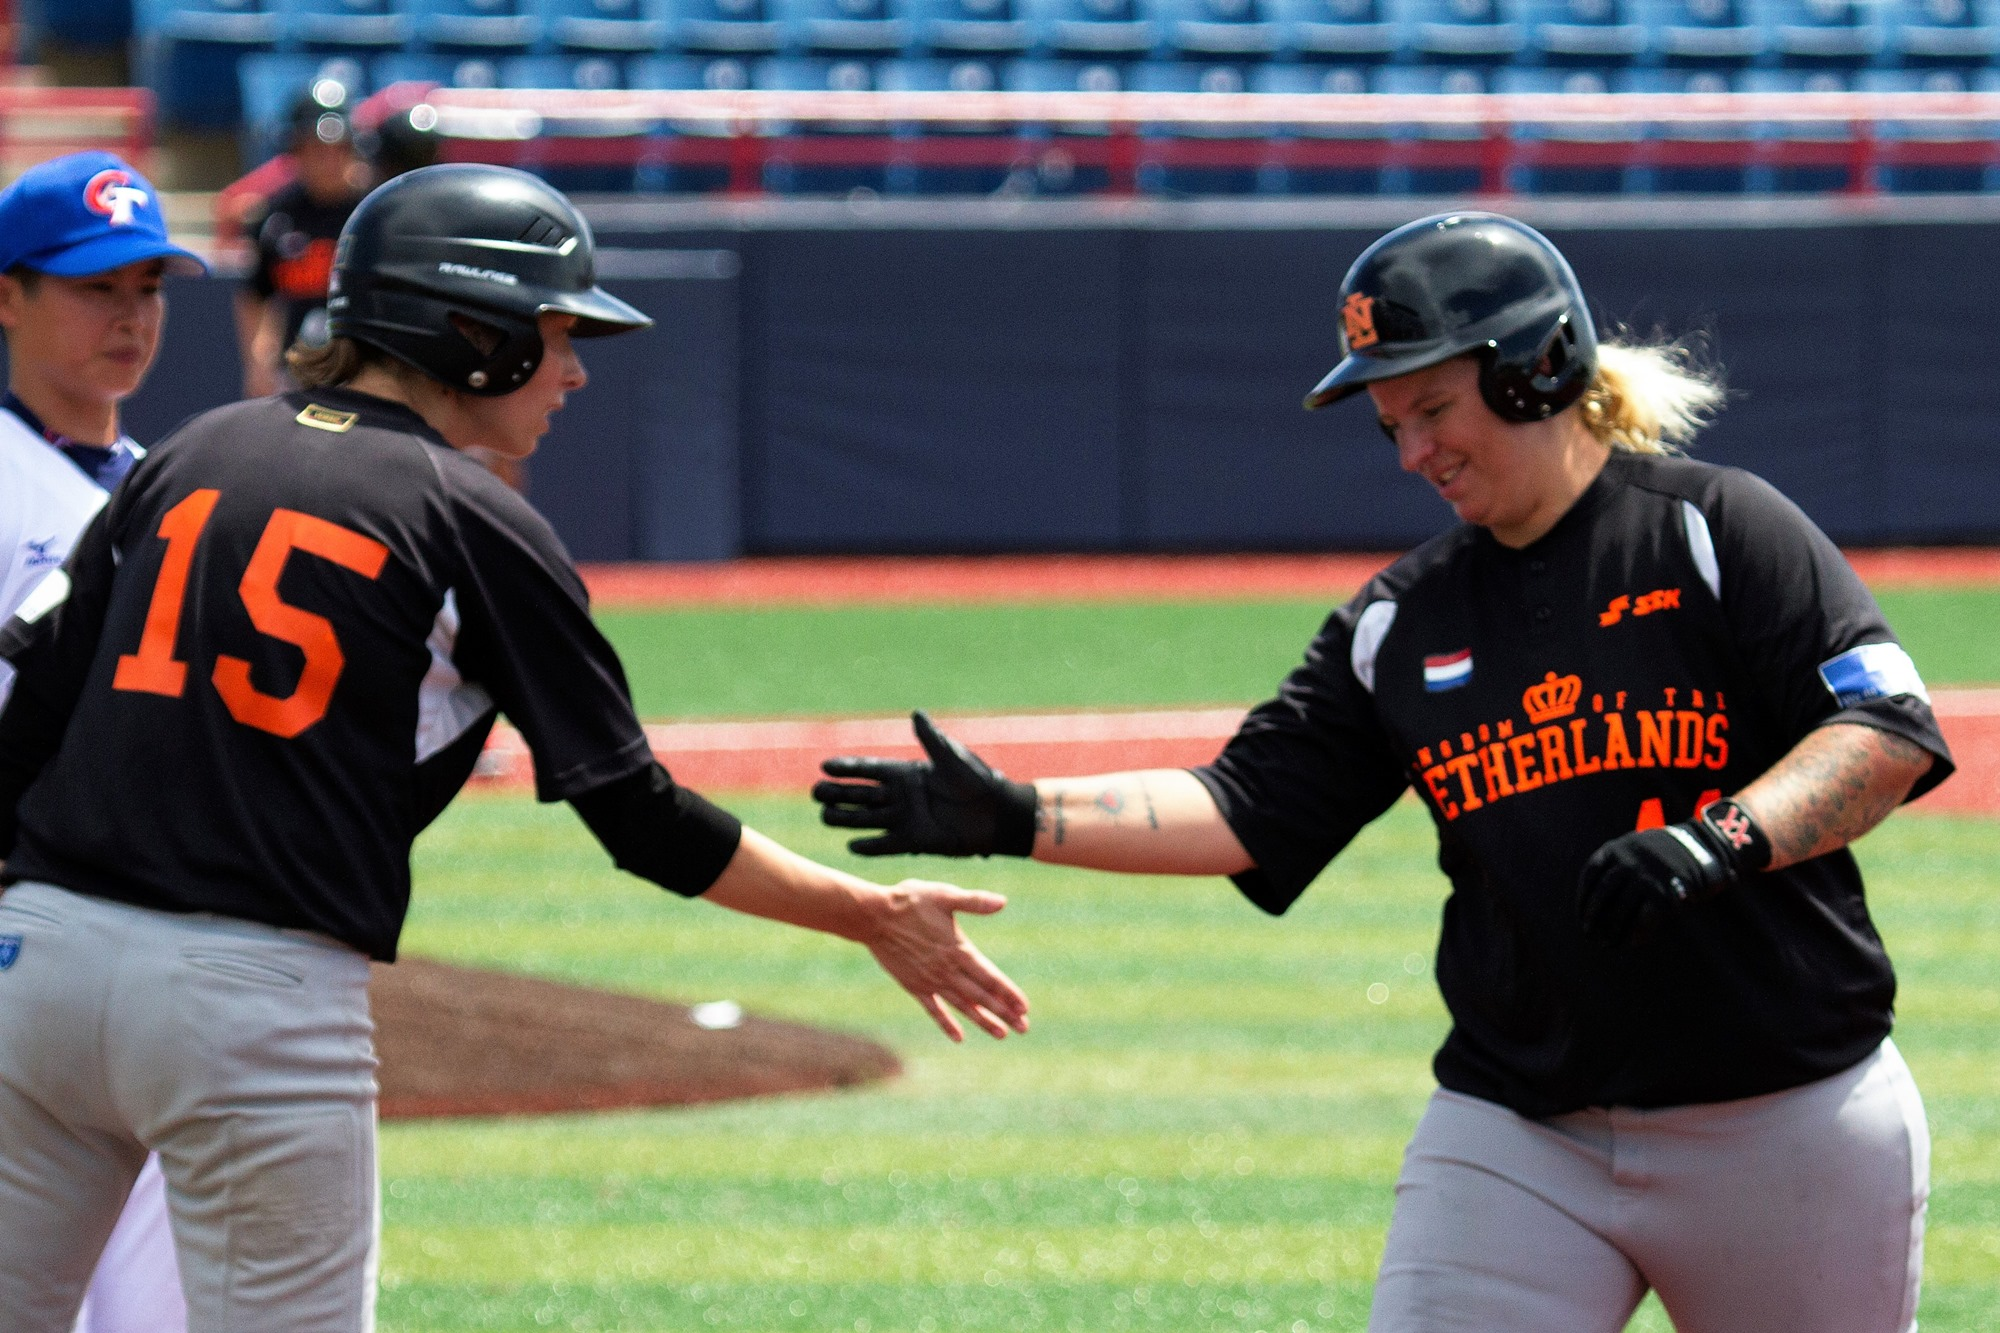 A brave Dutch side got on base against group A leading Chinese Taipei